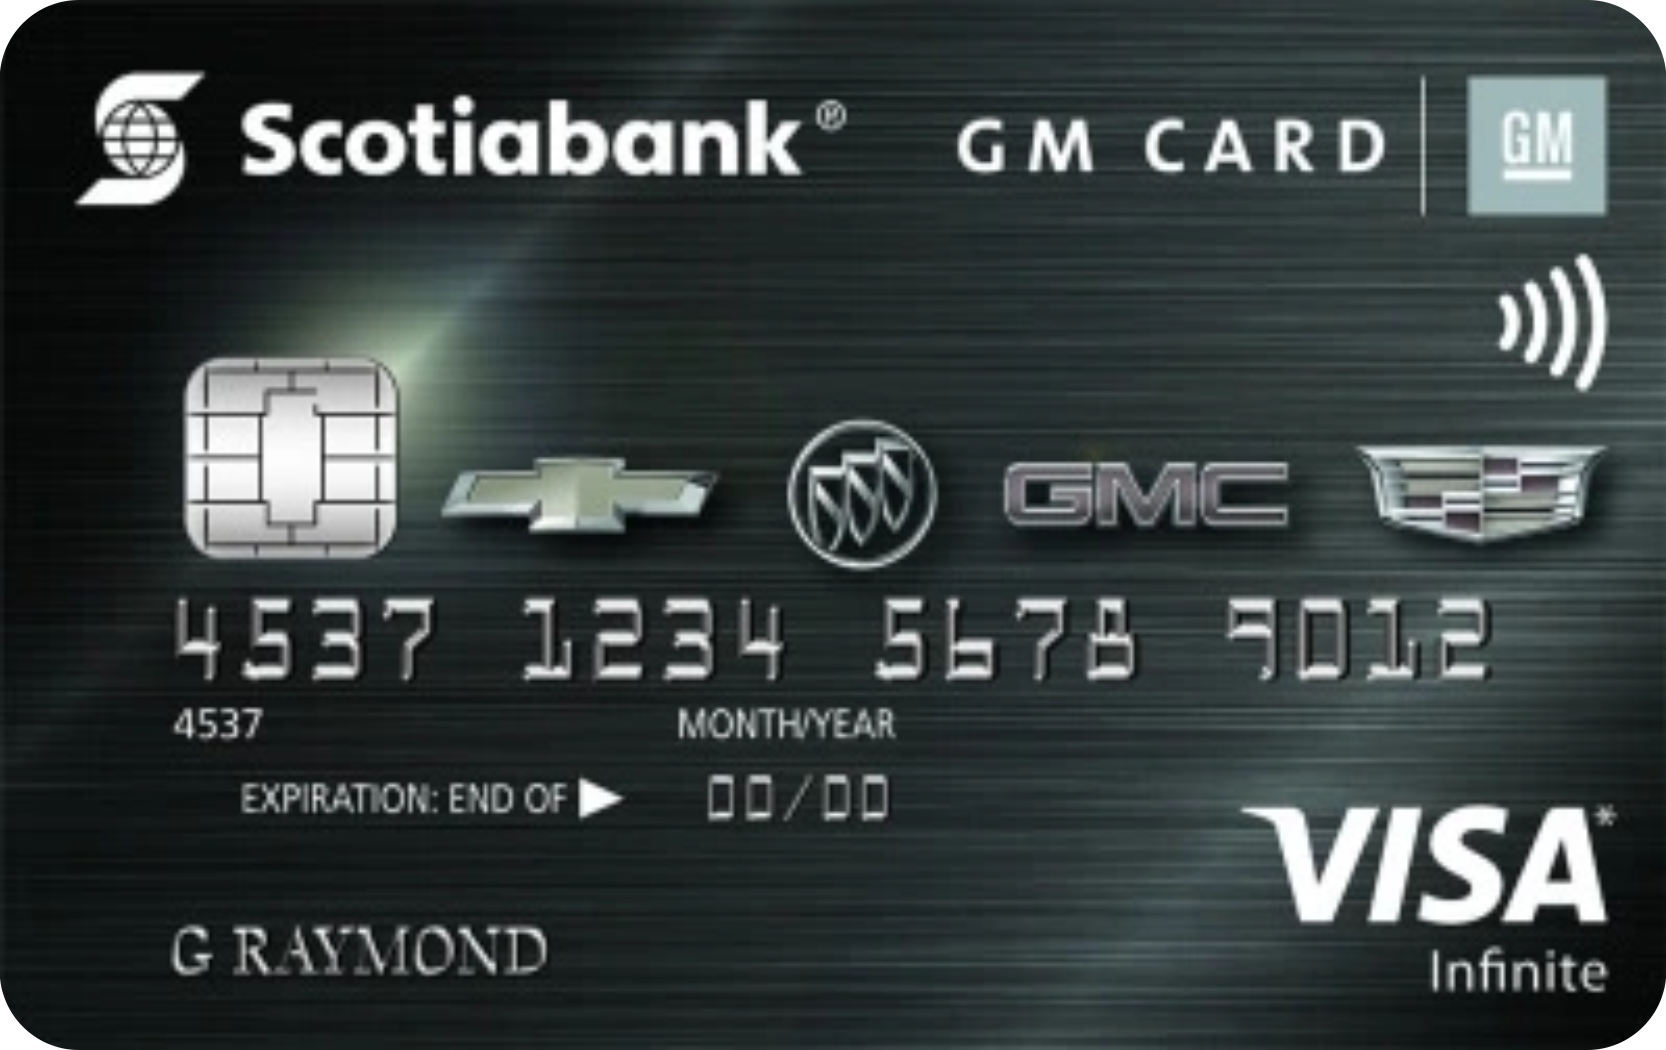 Scotiabank® GM® Visa Infinite card logo